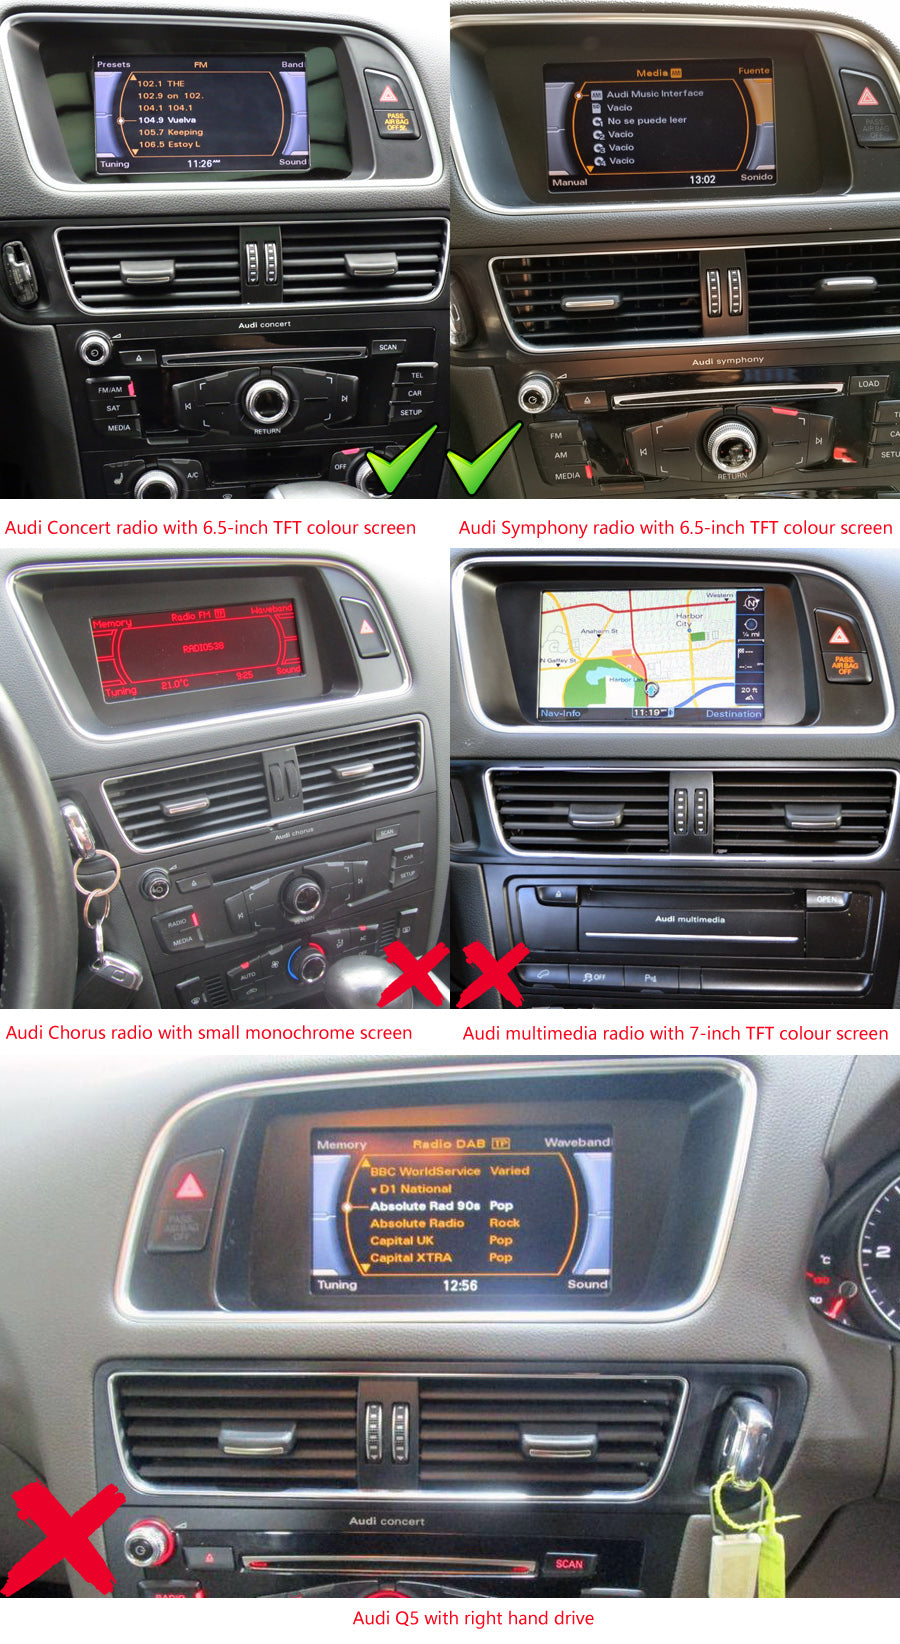 Audi Q5 GPS Navigation Car Stereo (2008-2016) Backup Camera Wiring Diagram Audi Q on